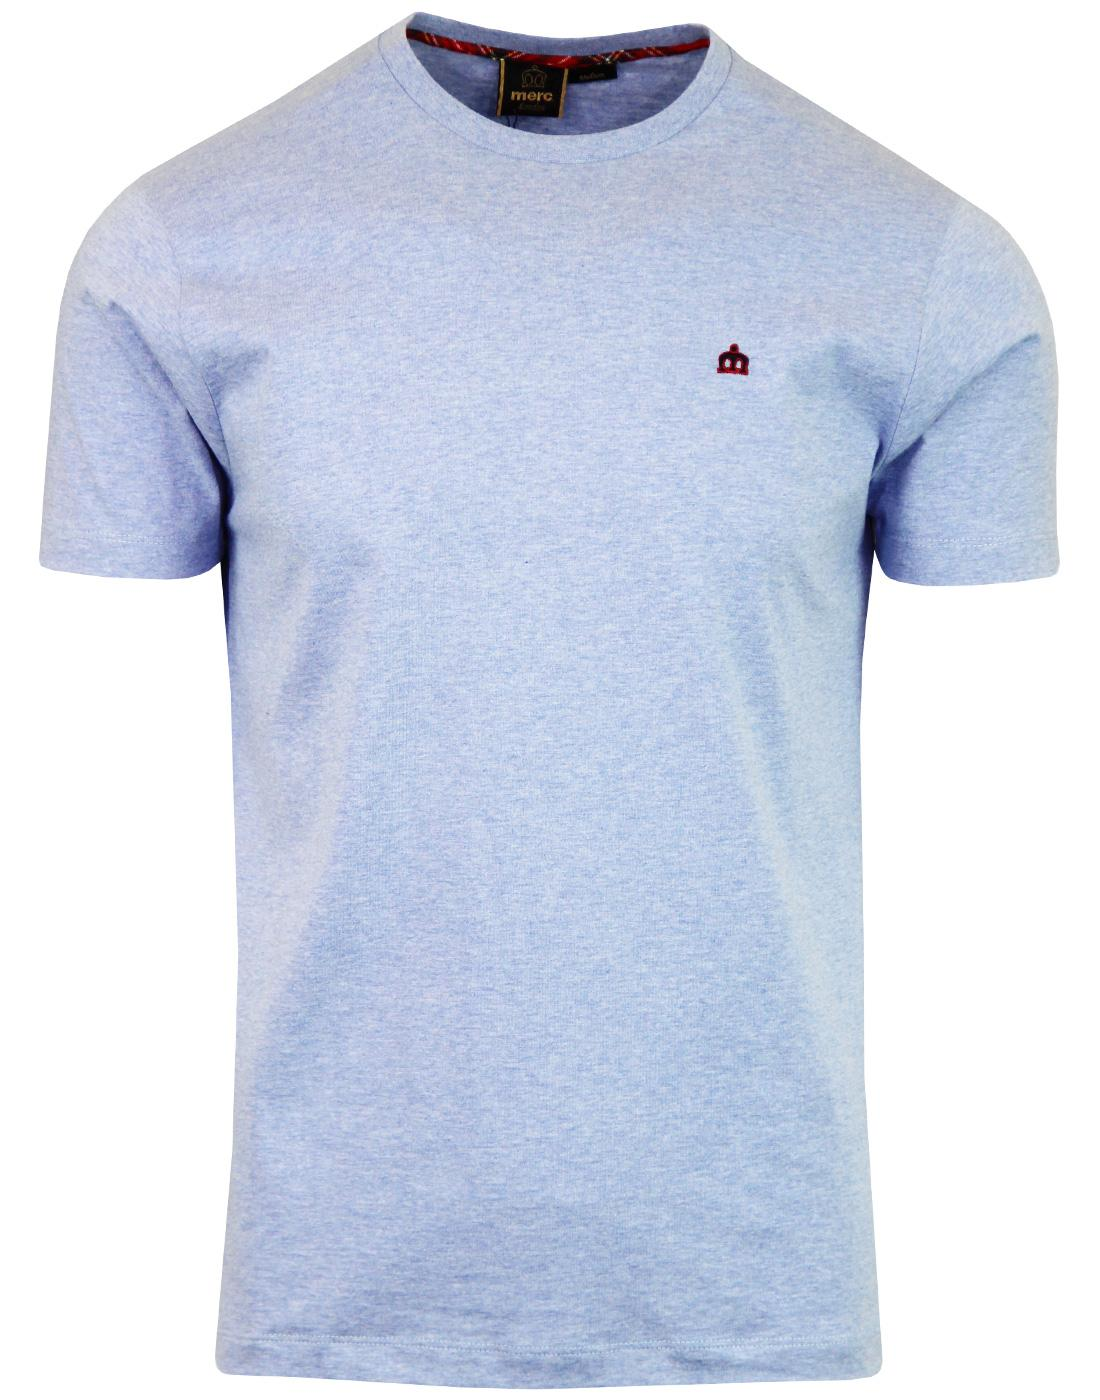 Keyport MERC Mens Retro Mod Crew Neck T-Shirt (DB)